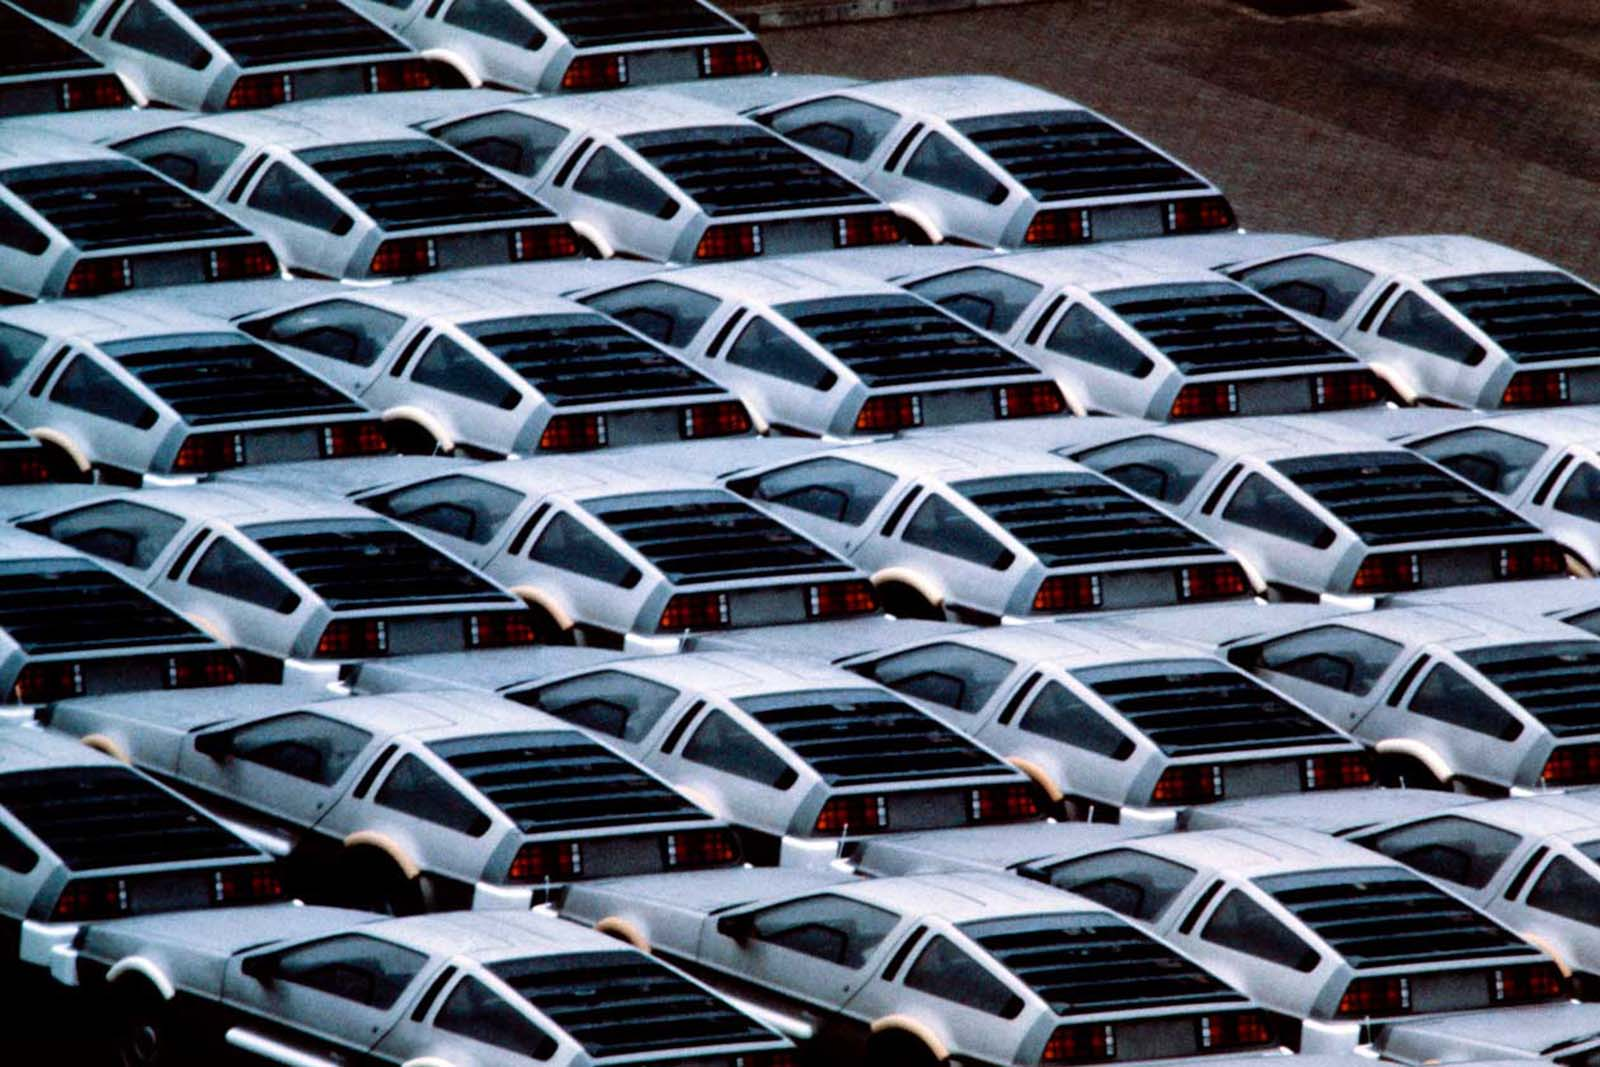 Stockpiled Delorean cars at the Delorean Motor plant, Northern Ireland. 1982.